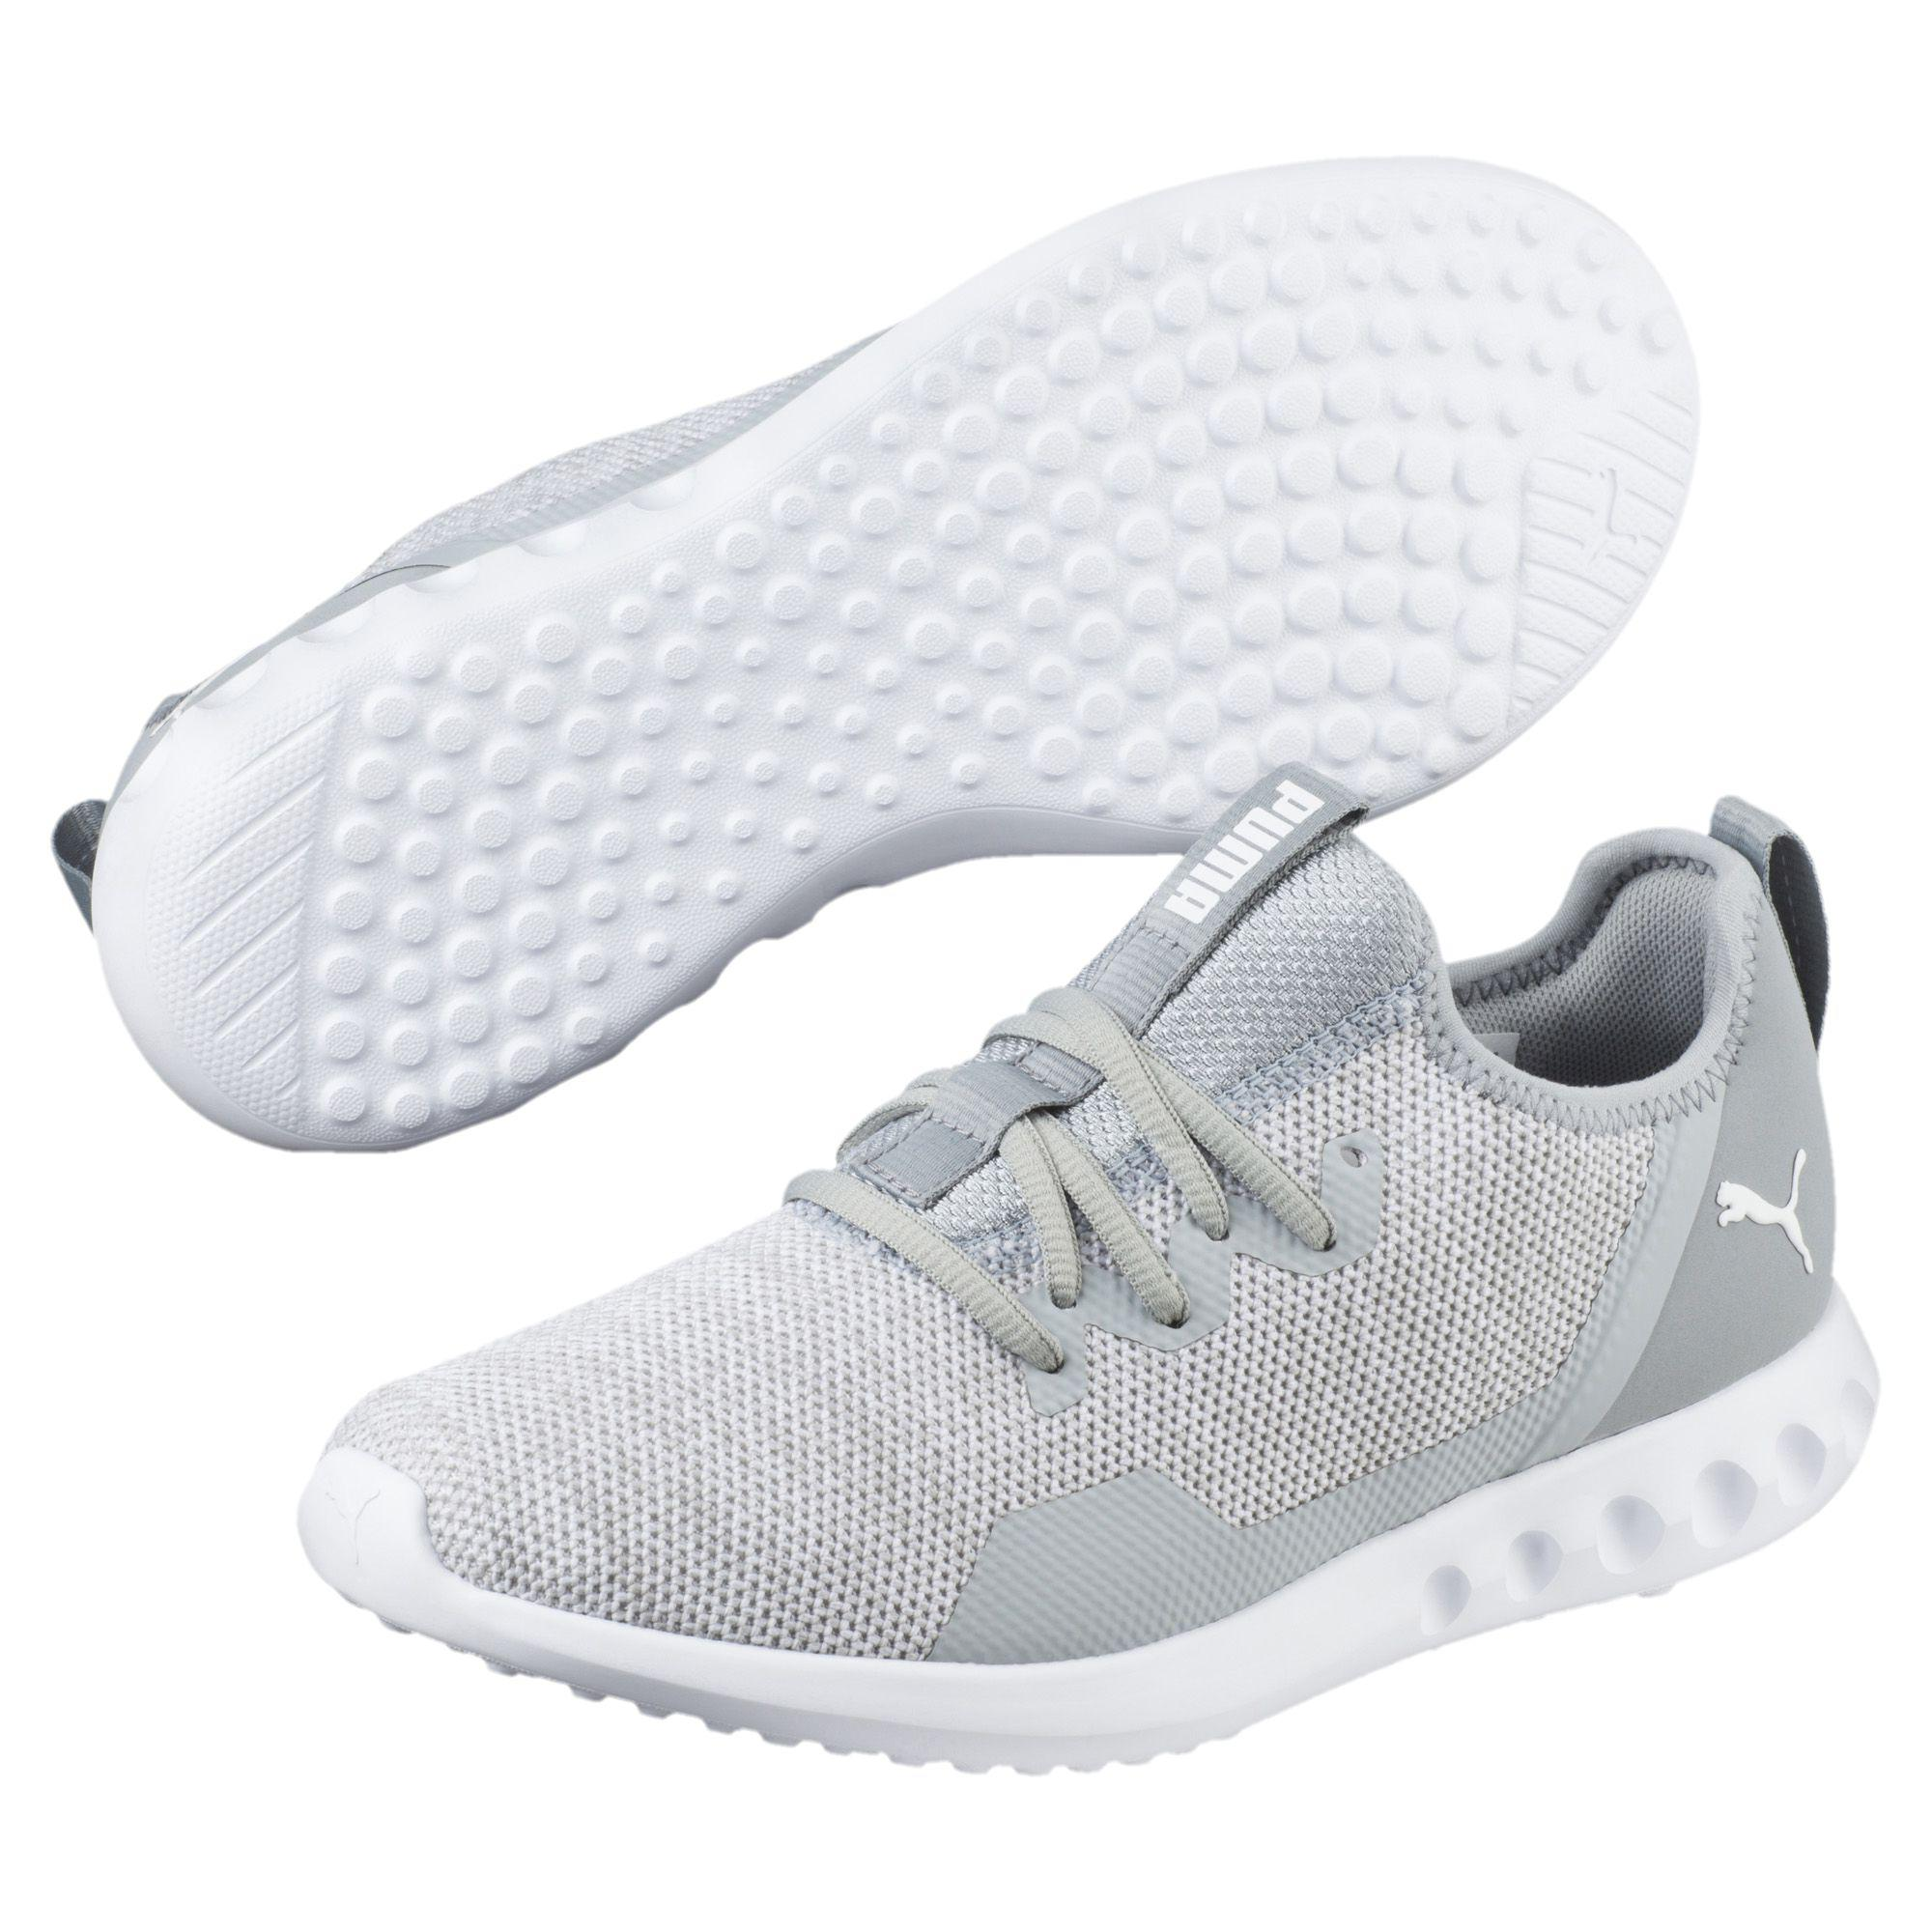 2c9ec9b6c69 Lyst - PUMA Carson 2 X Knit Women s Running Shoes in White